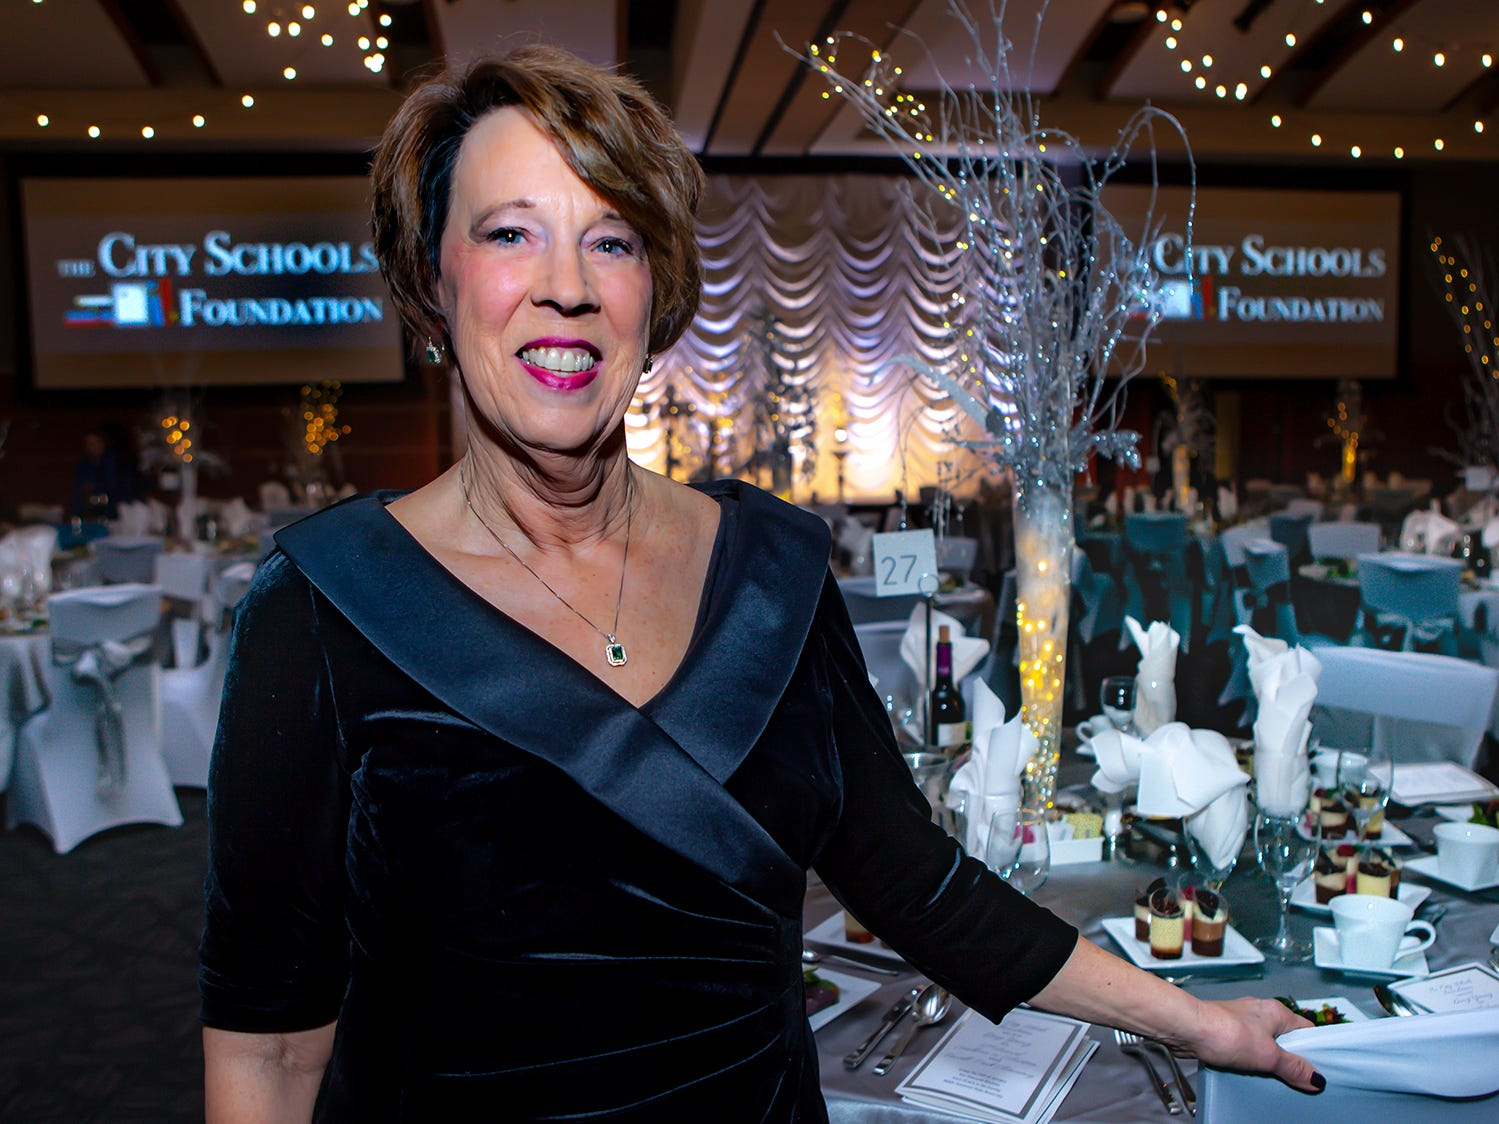 Sandra Parks at the 2019 Excellence in Education Gala, hosted by the City Schools Foundation on Friday, Jan. 25, 2019 at Stones River Country Club in Murfreesboro.